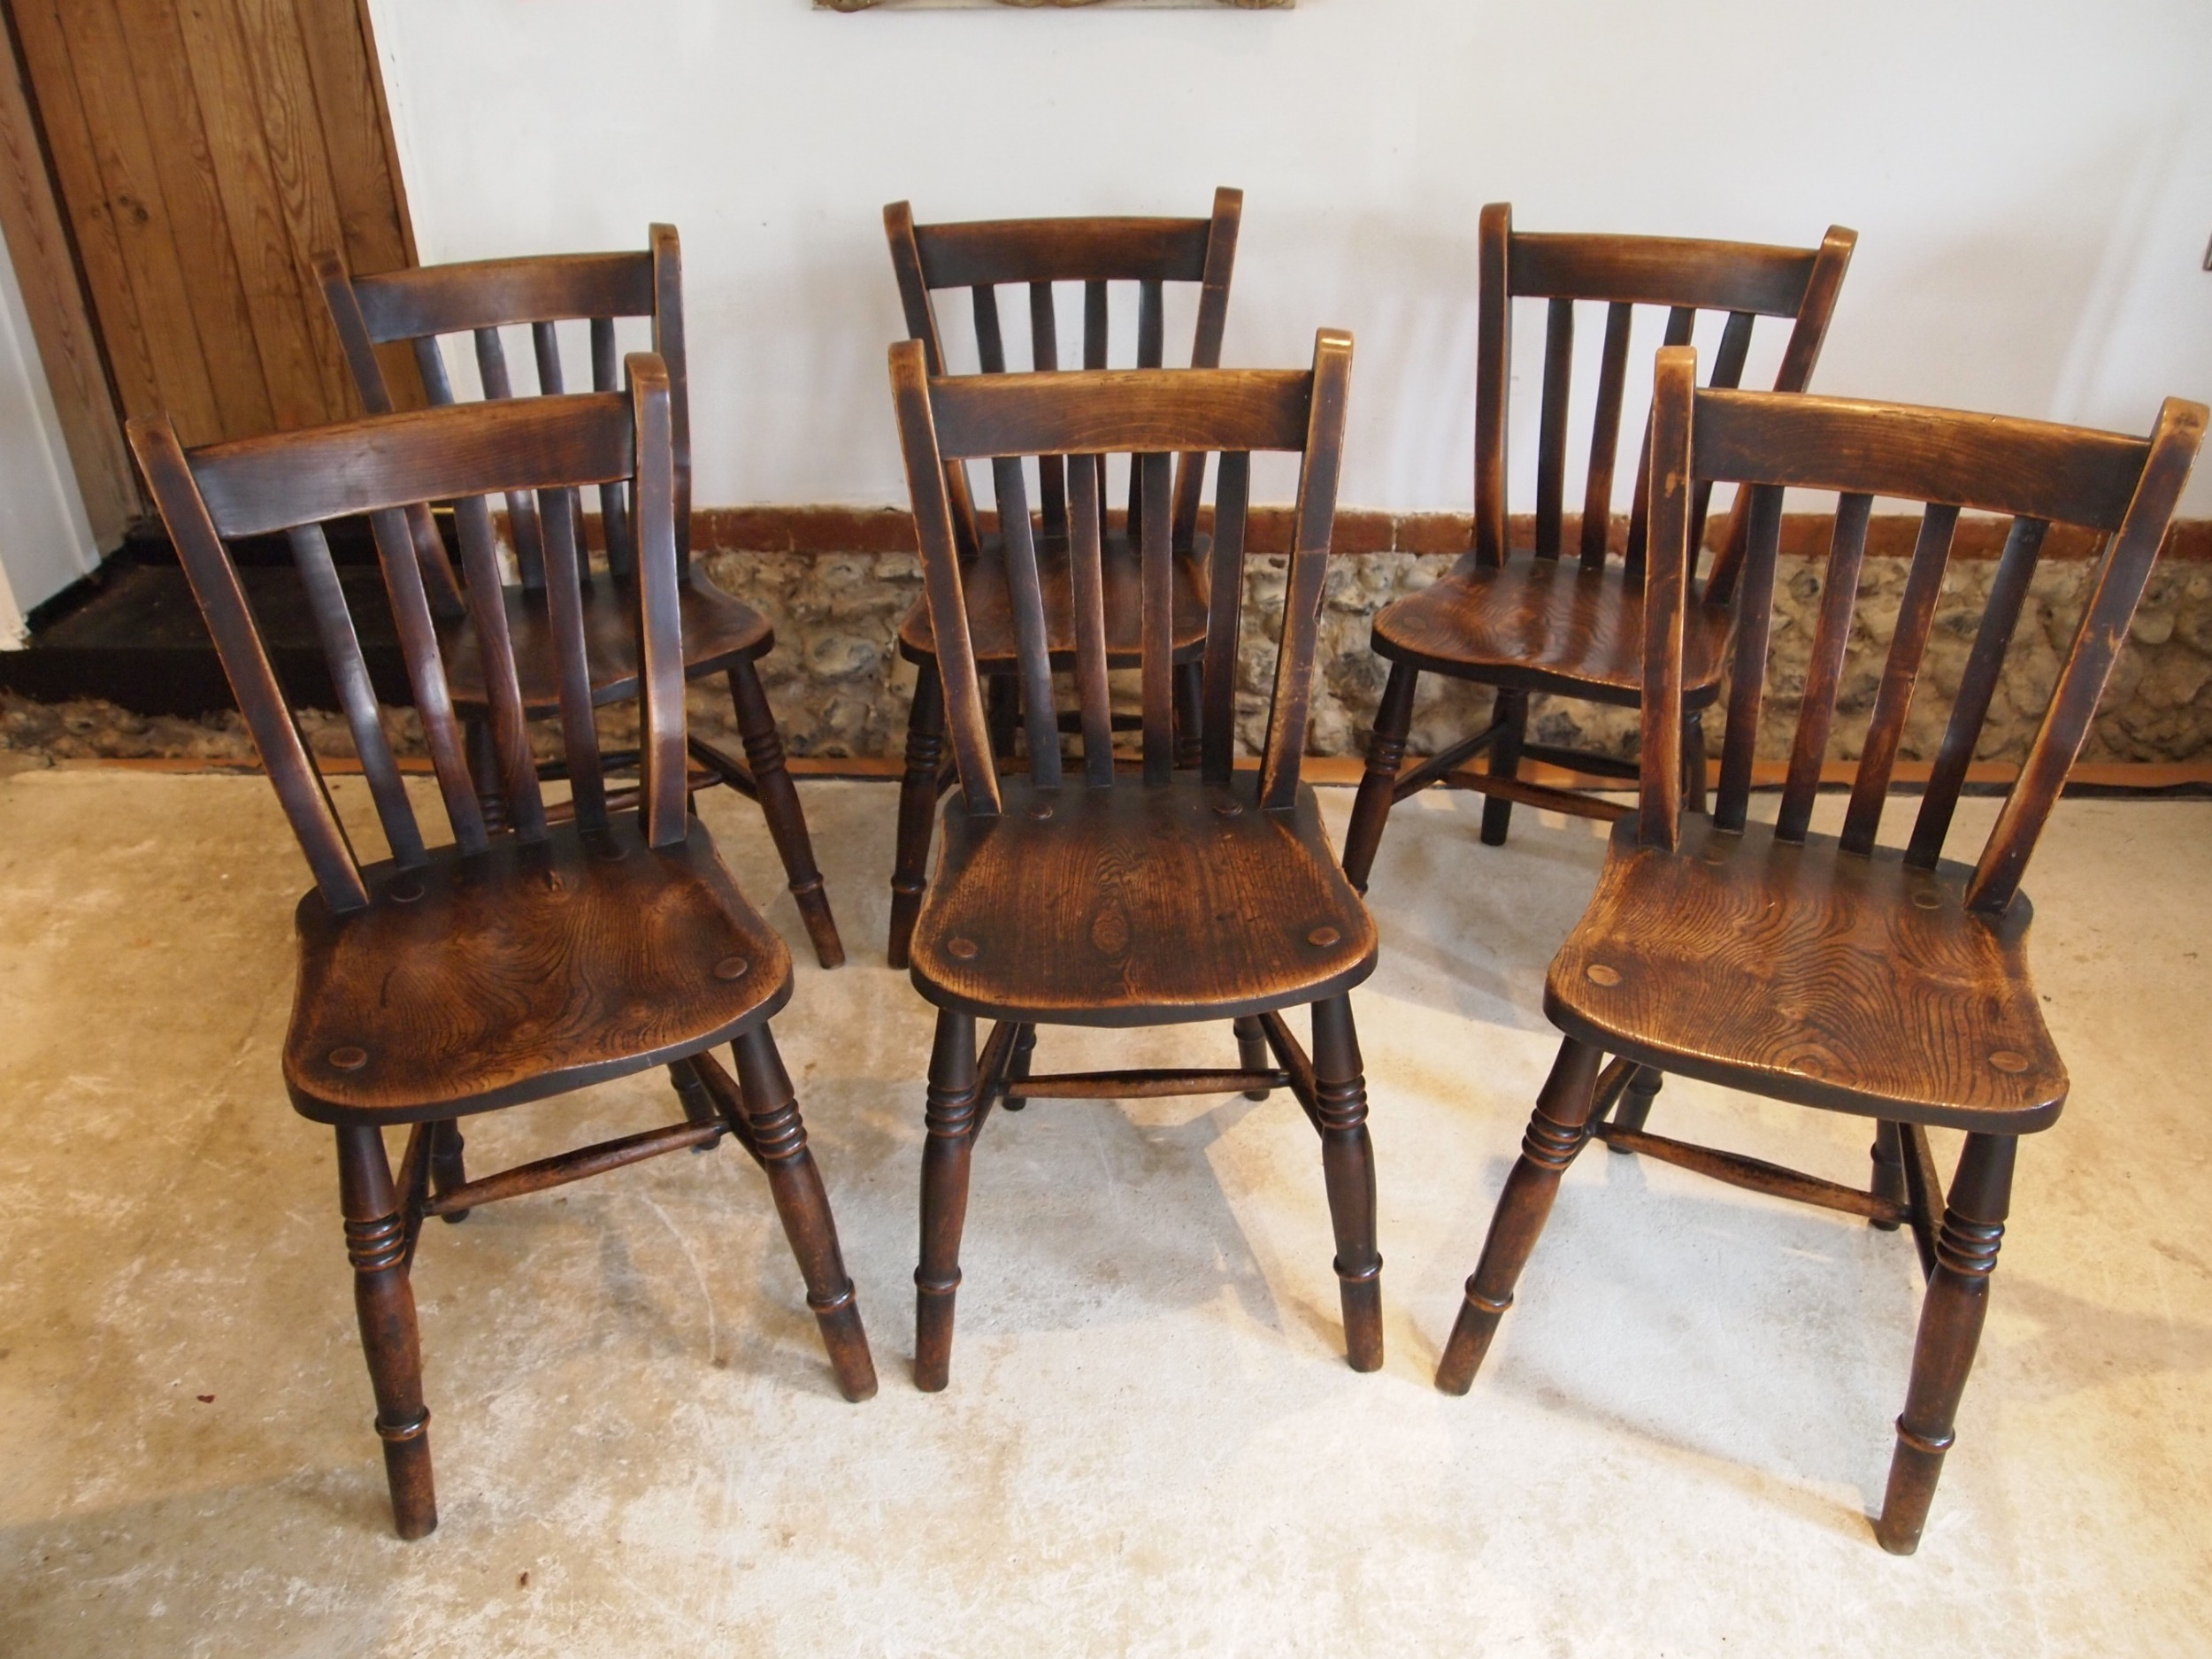 chairs stunning set of 6 windsor kitchen chairs dated 1915 goodearl and sons